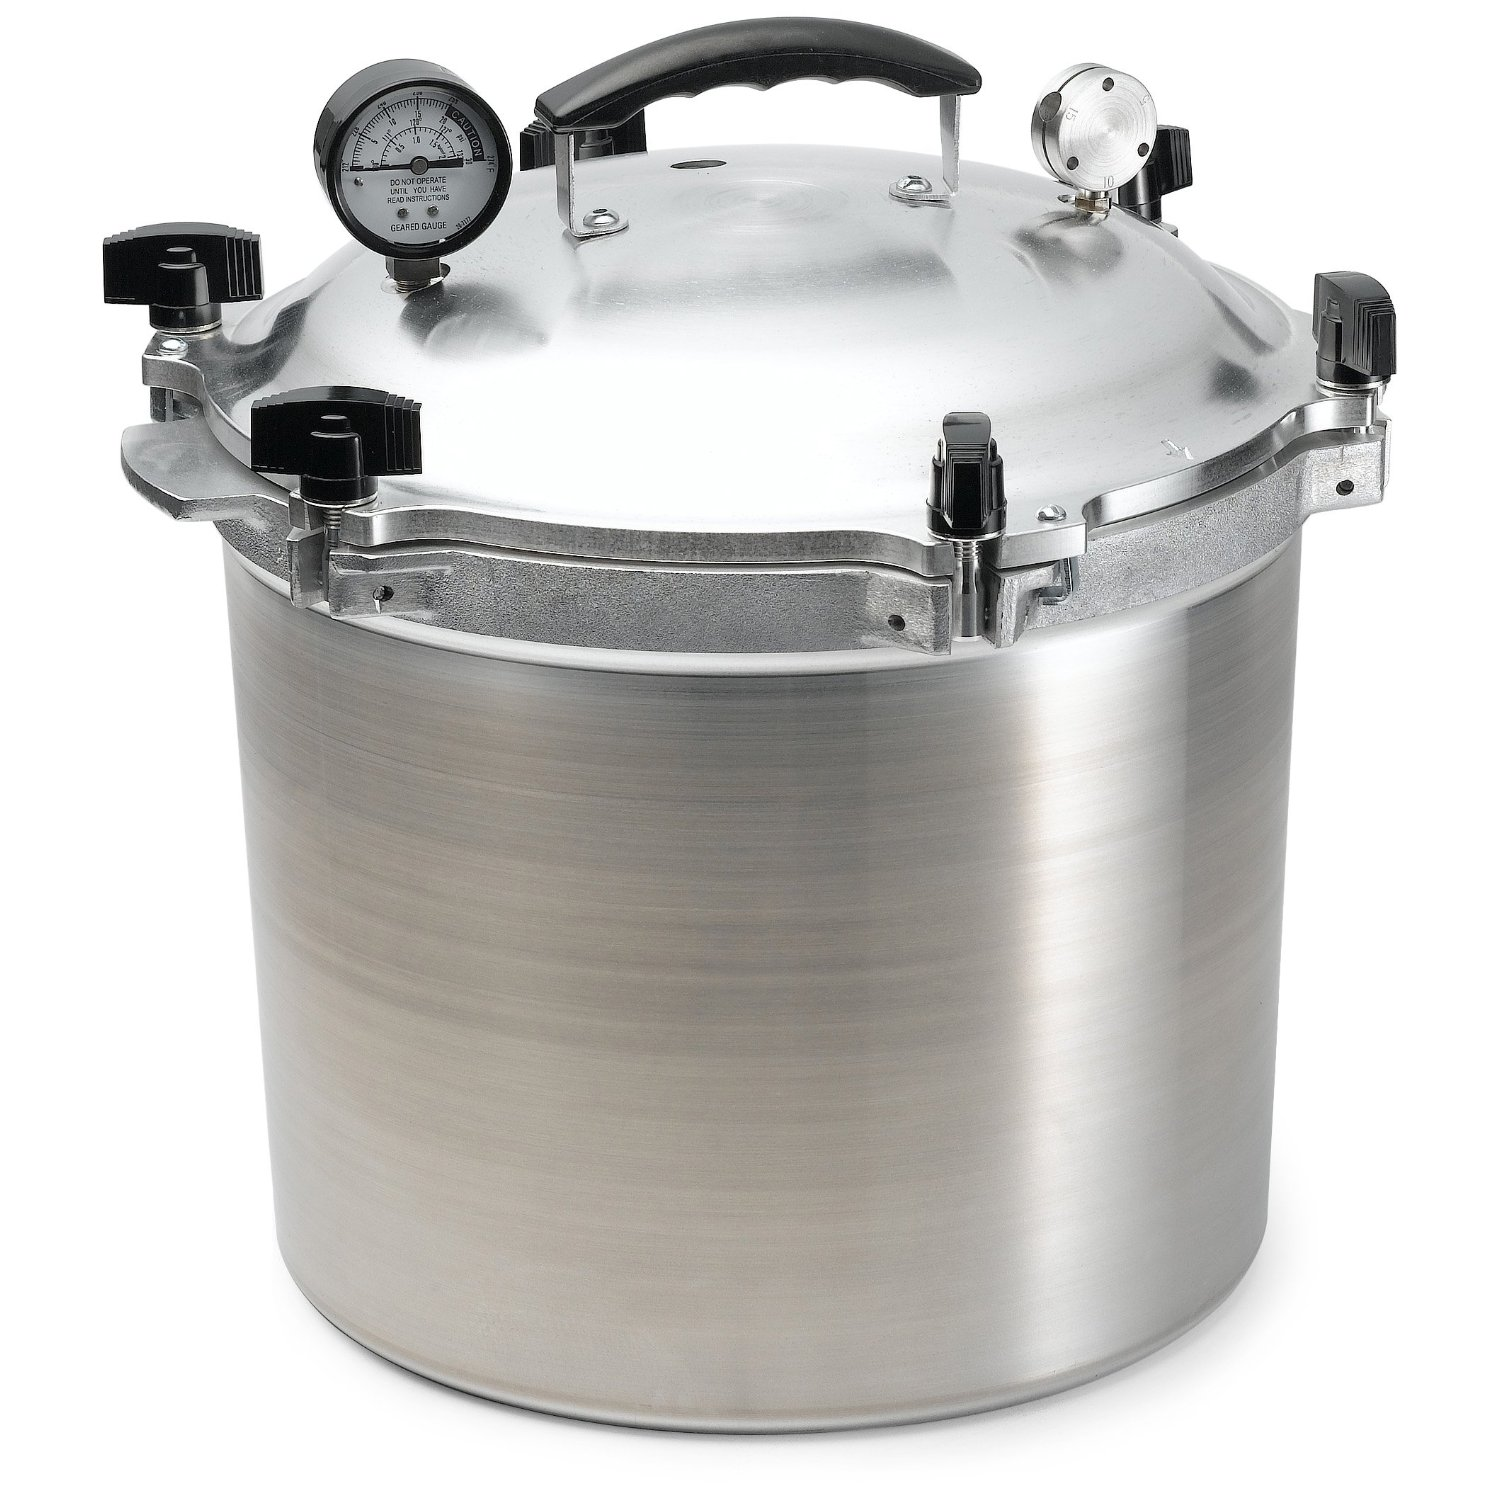 Image Result For All American Pressure Canner